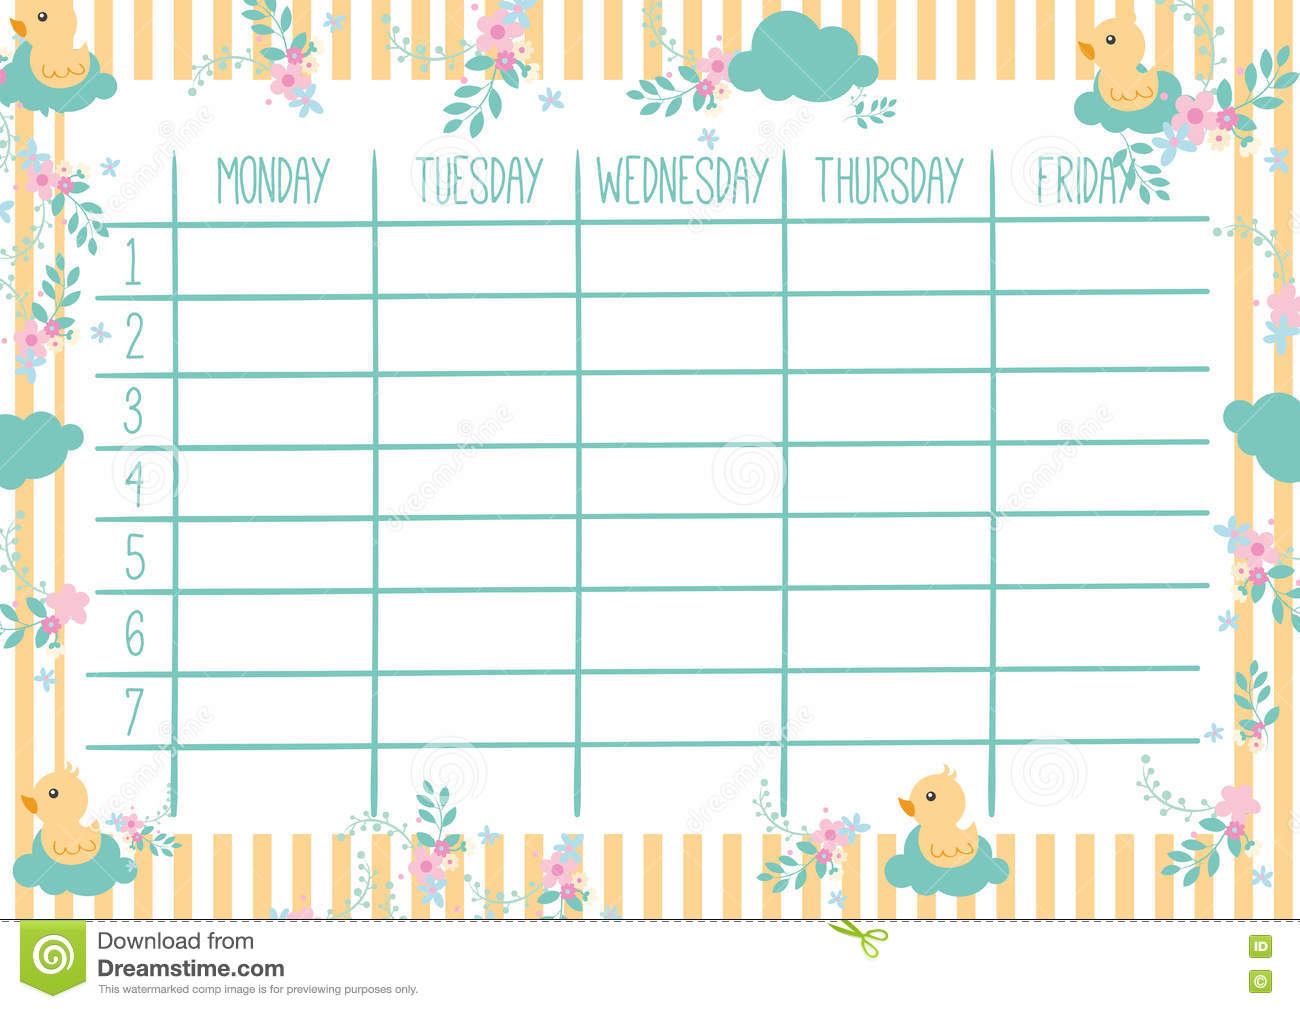 image about Cute Weekly Planners known as Lovely Weekly Planner Case in point 76412894 - Megapixl